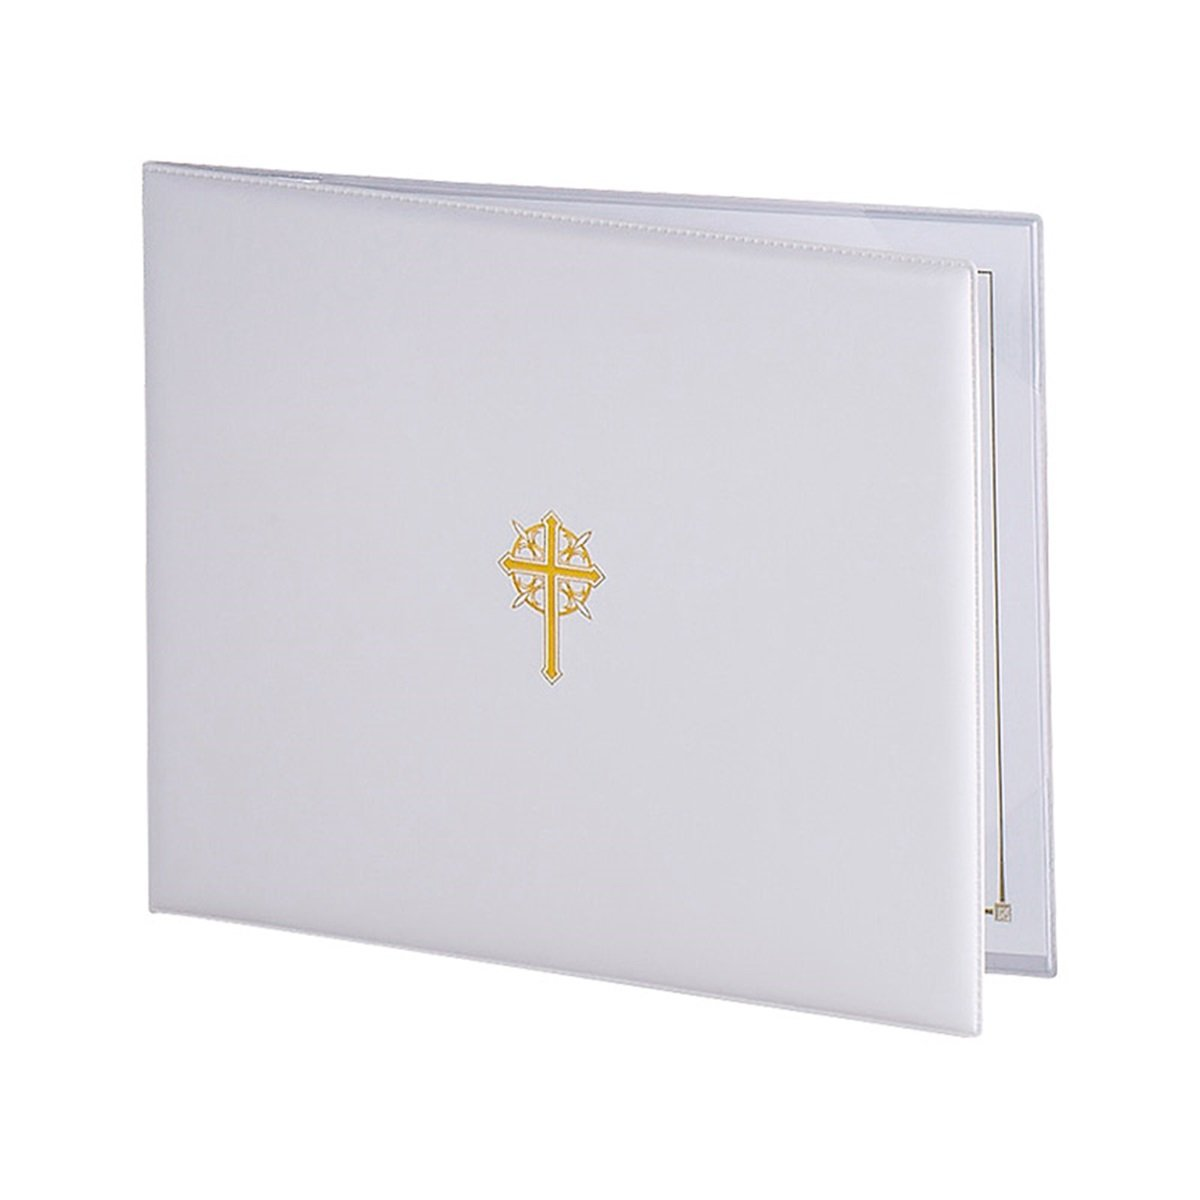 White Sacramental Padded Certificate Holder with Gold Stamped Cross Design, 10 3/8 Inch